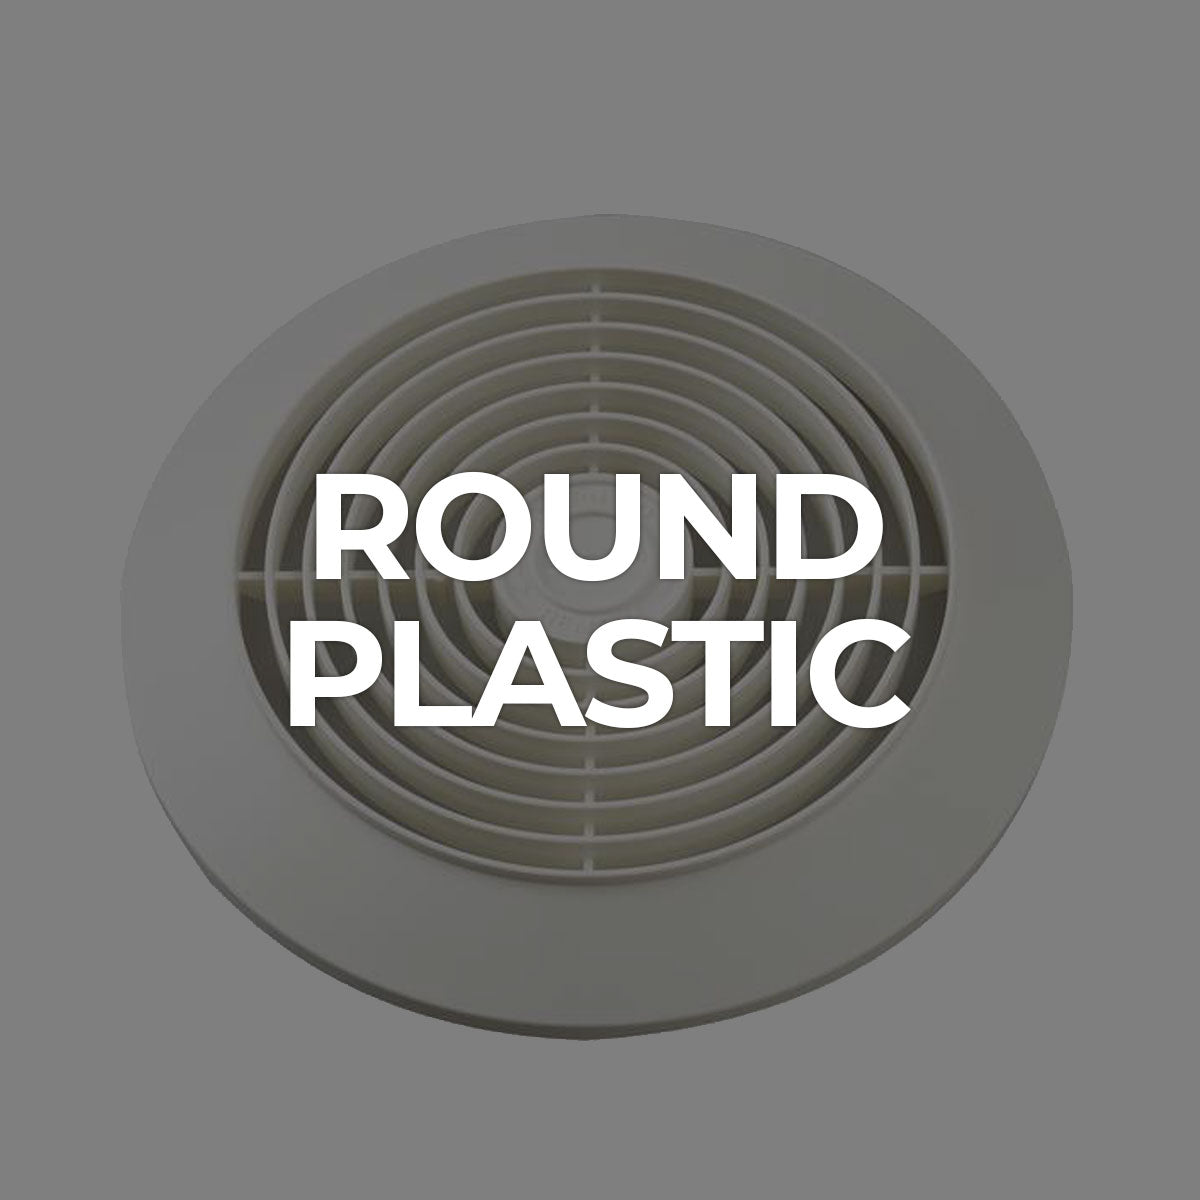 Supply / Round Plastic